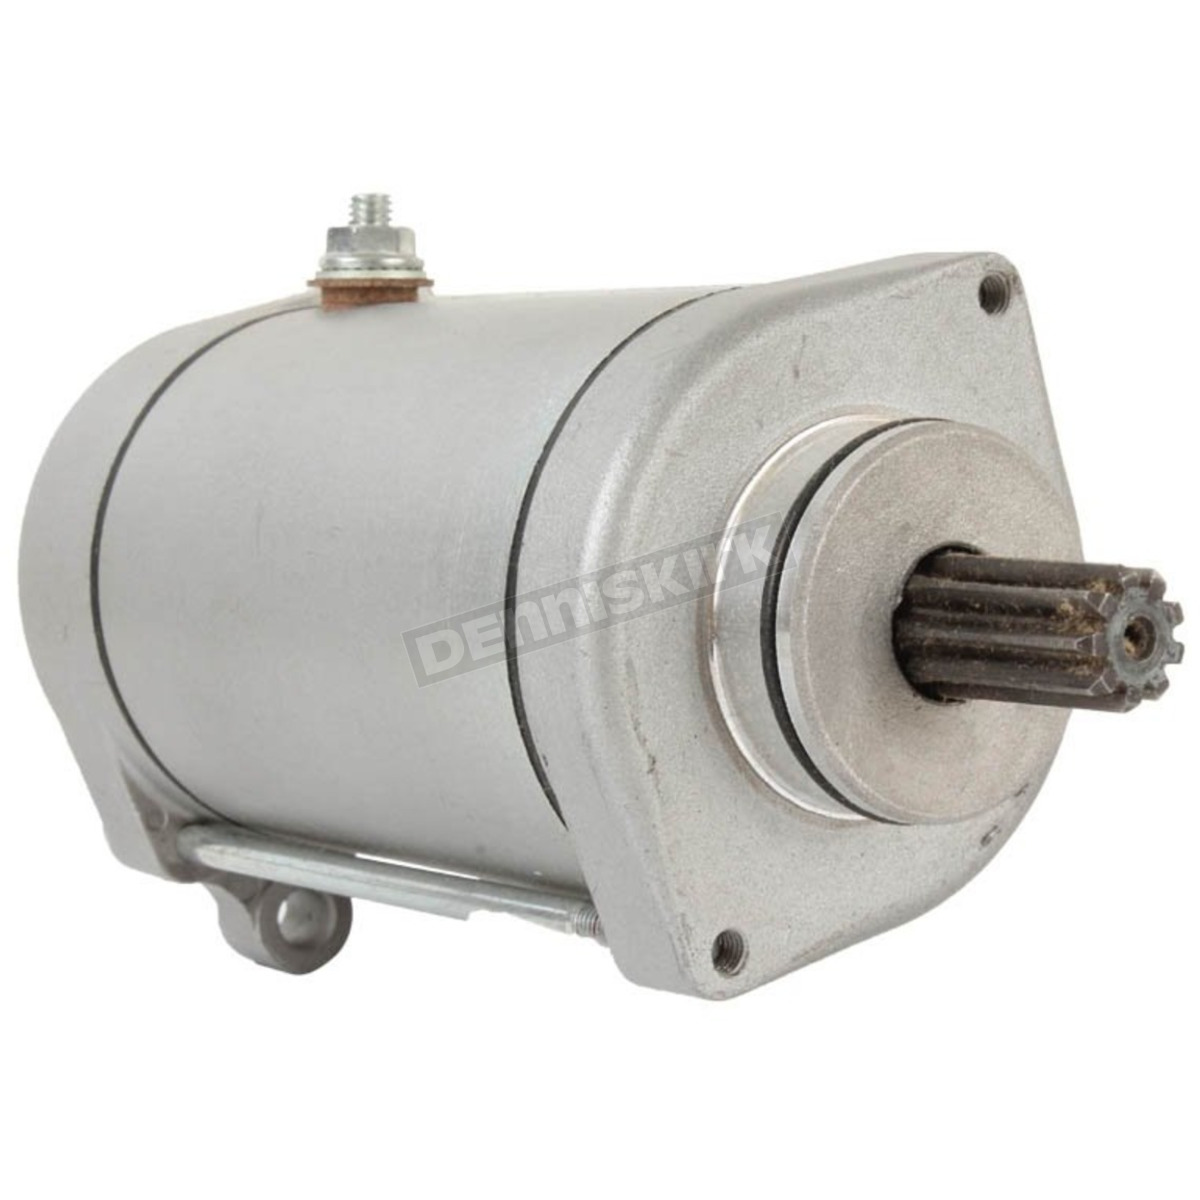 Parts unlimited starter motor smu0187 cruiser motorcycle for Nhd inc motor starter